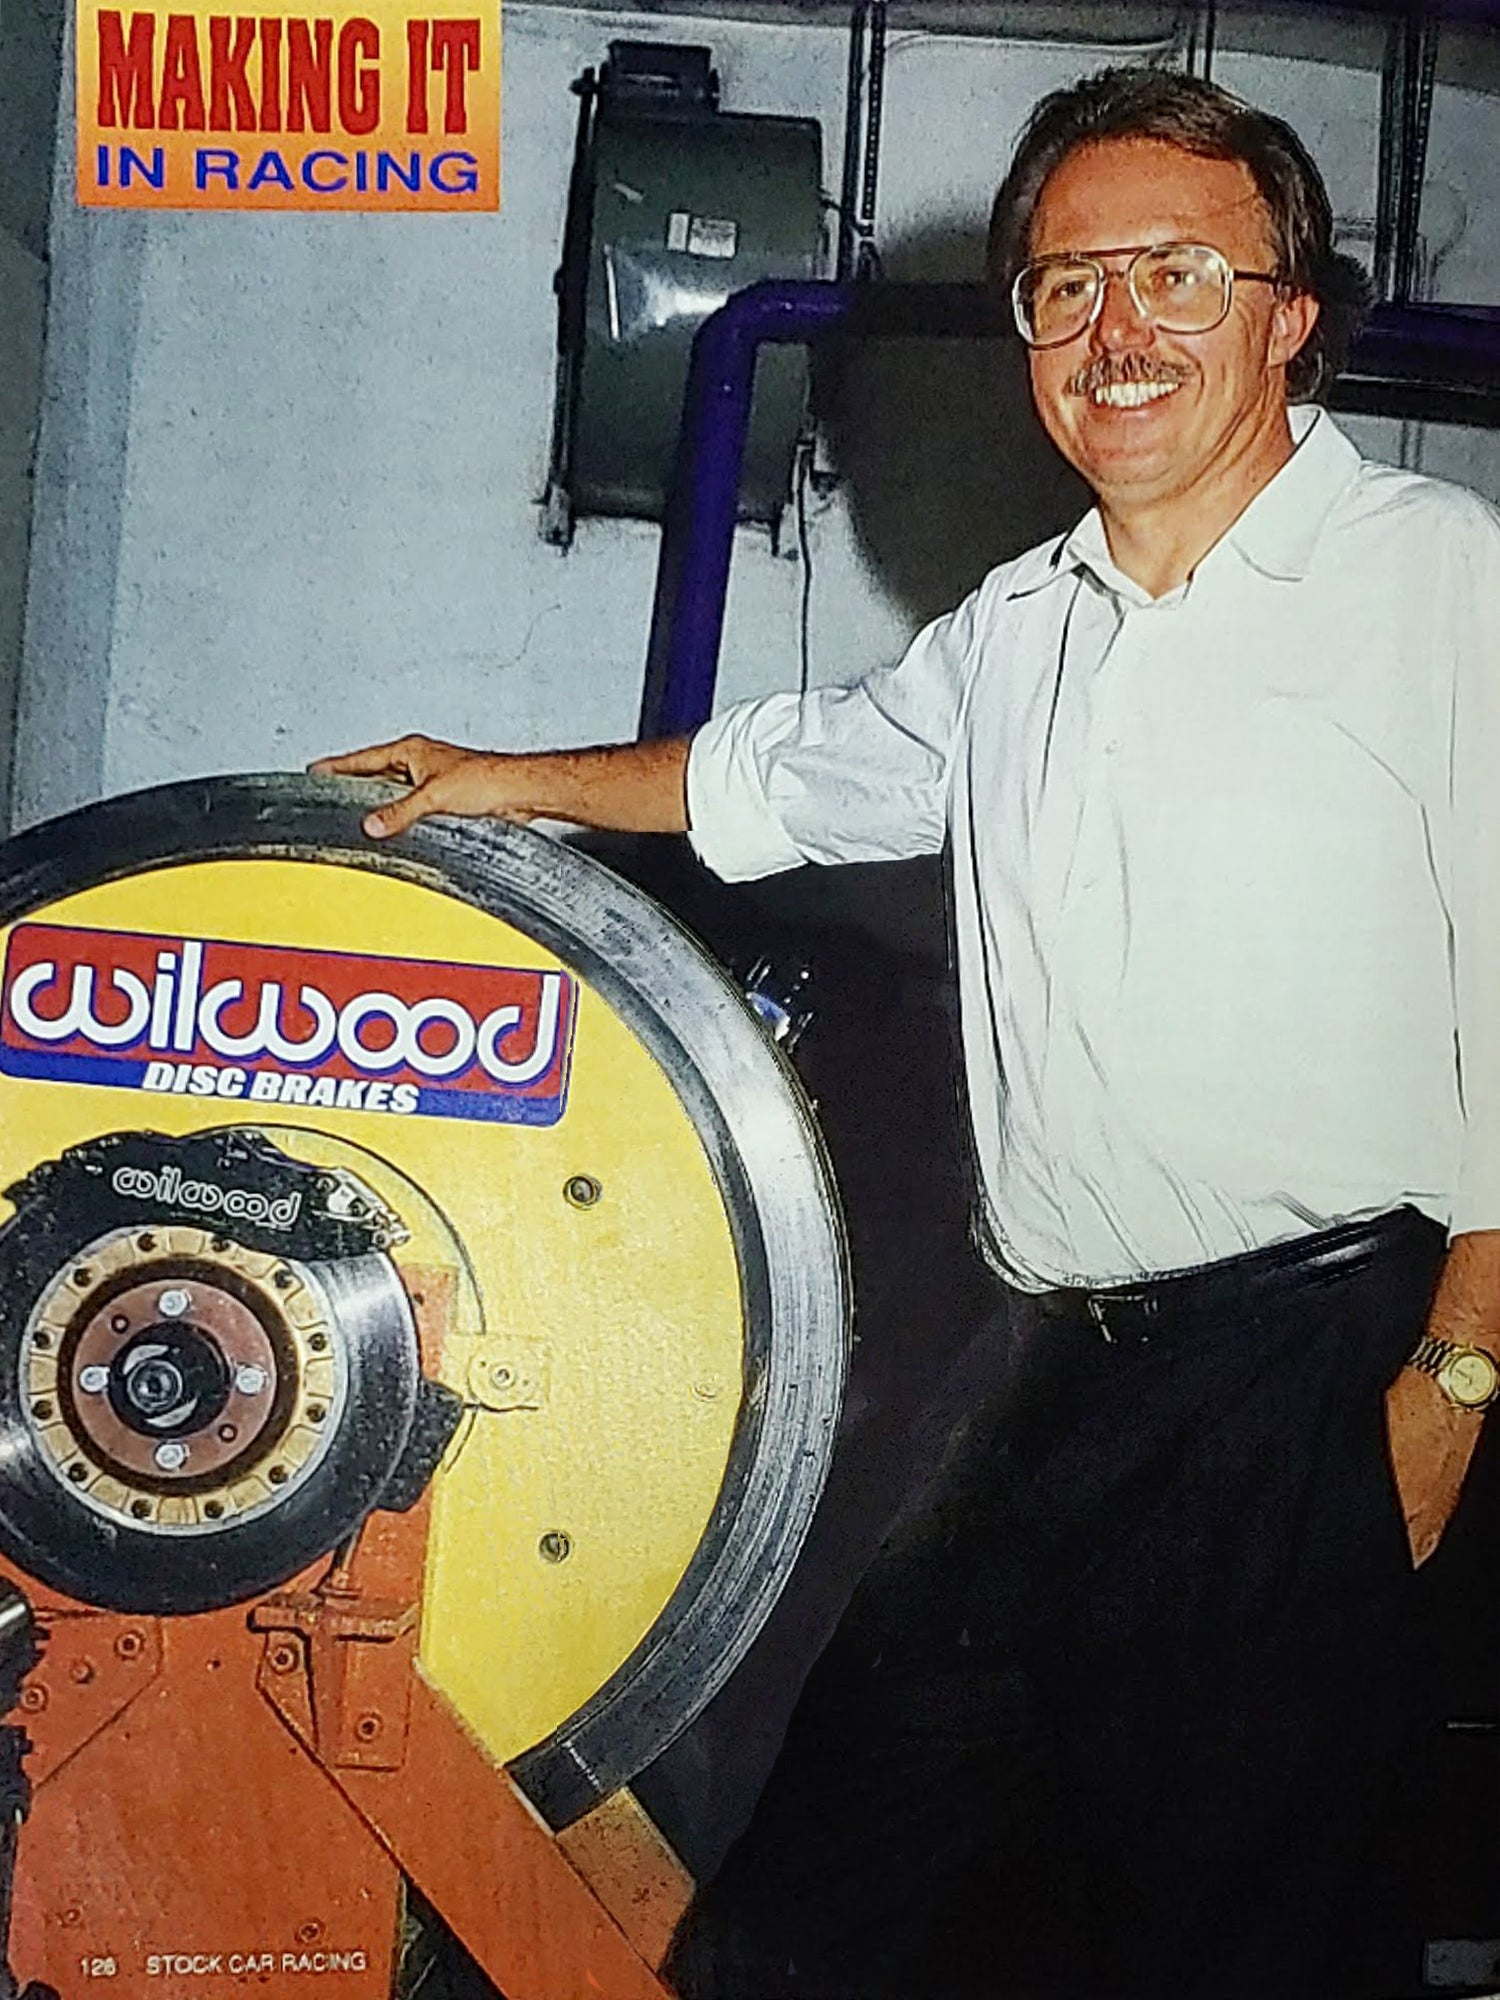 Bill Wood stands next to the Wilwood brake dynamometer he developed